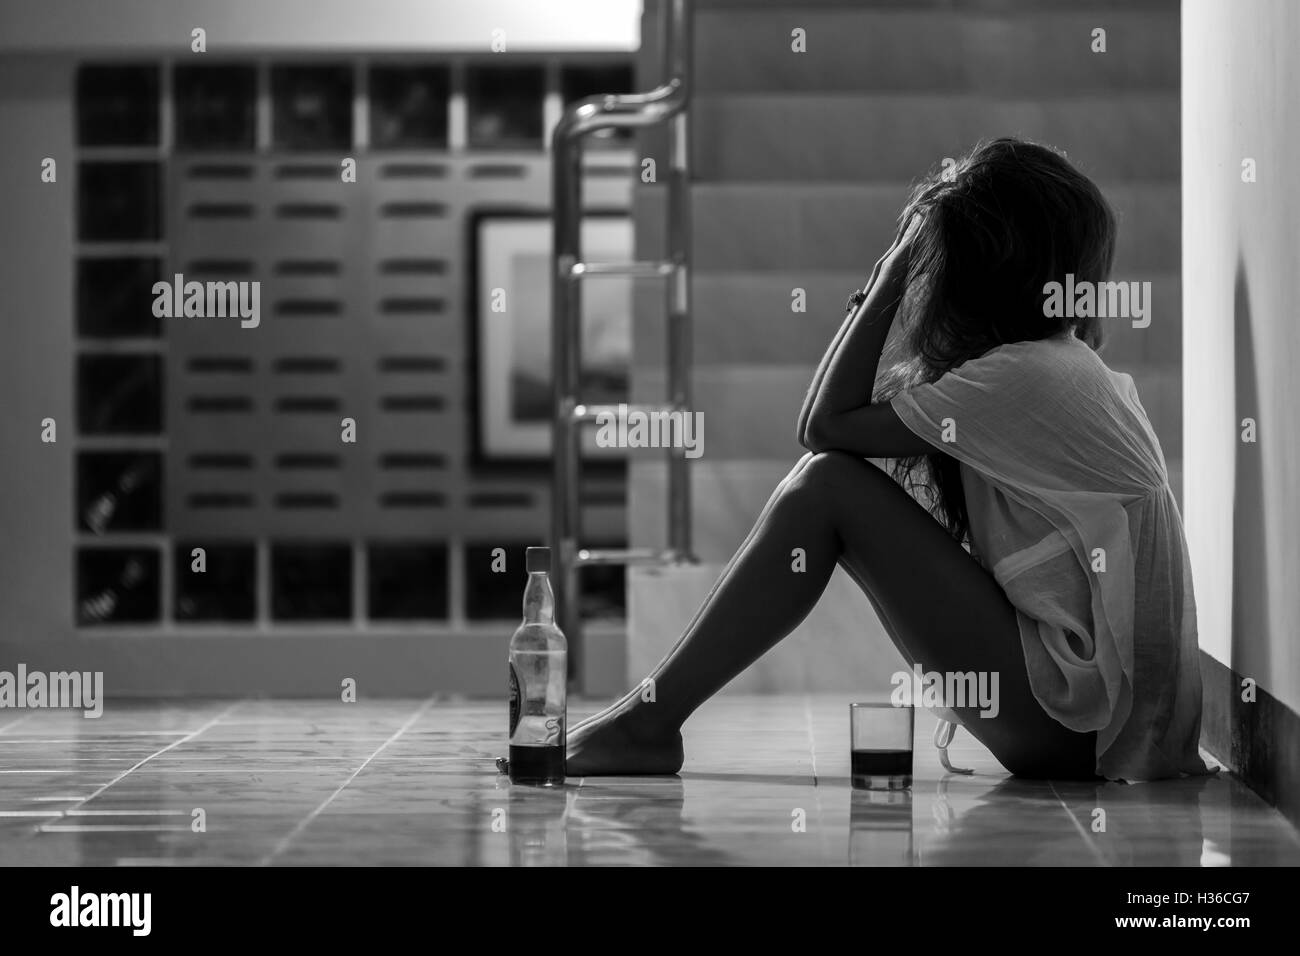 Girl in depression sitting on the floor with glass of wine - Stock Image